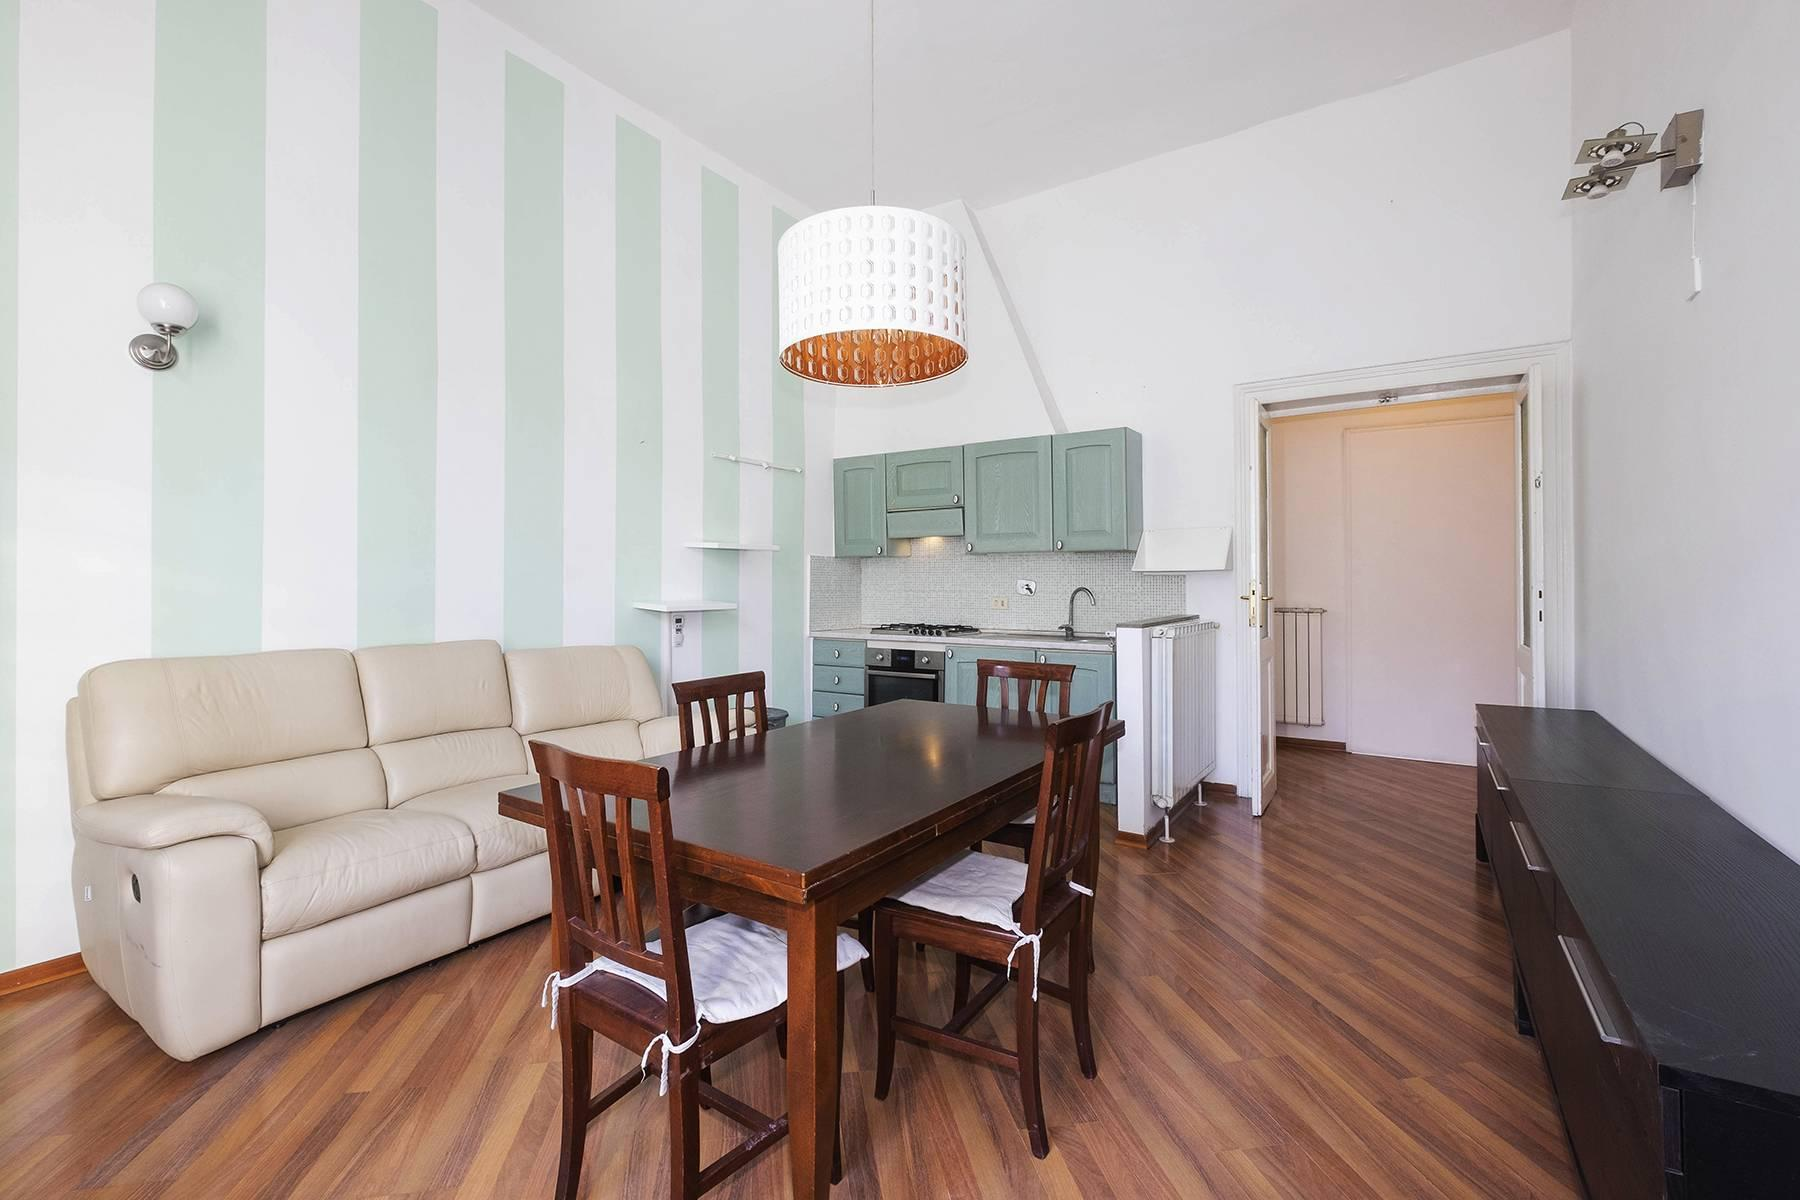 Elegant apartment in the Sallustiano district - 9